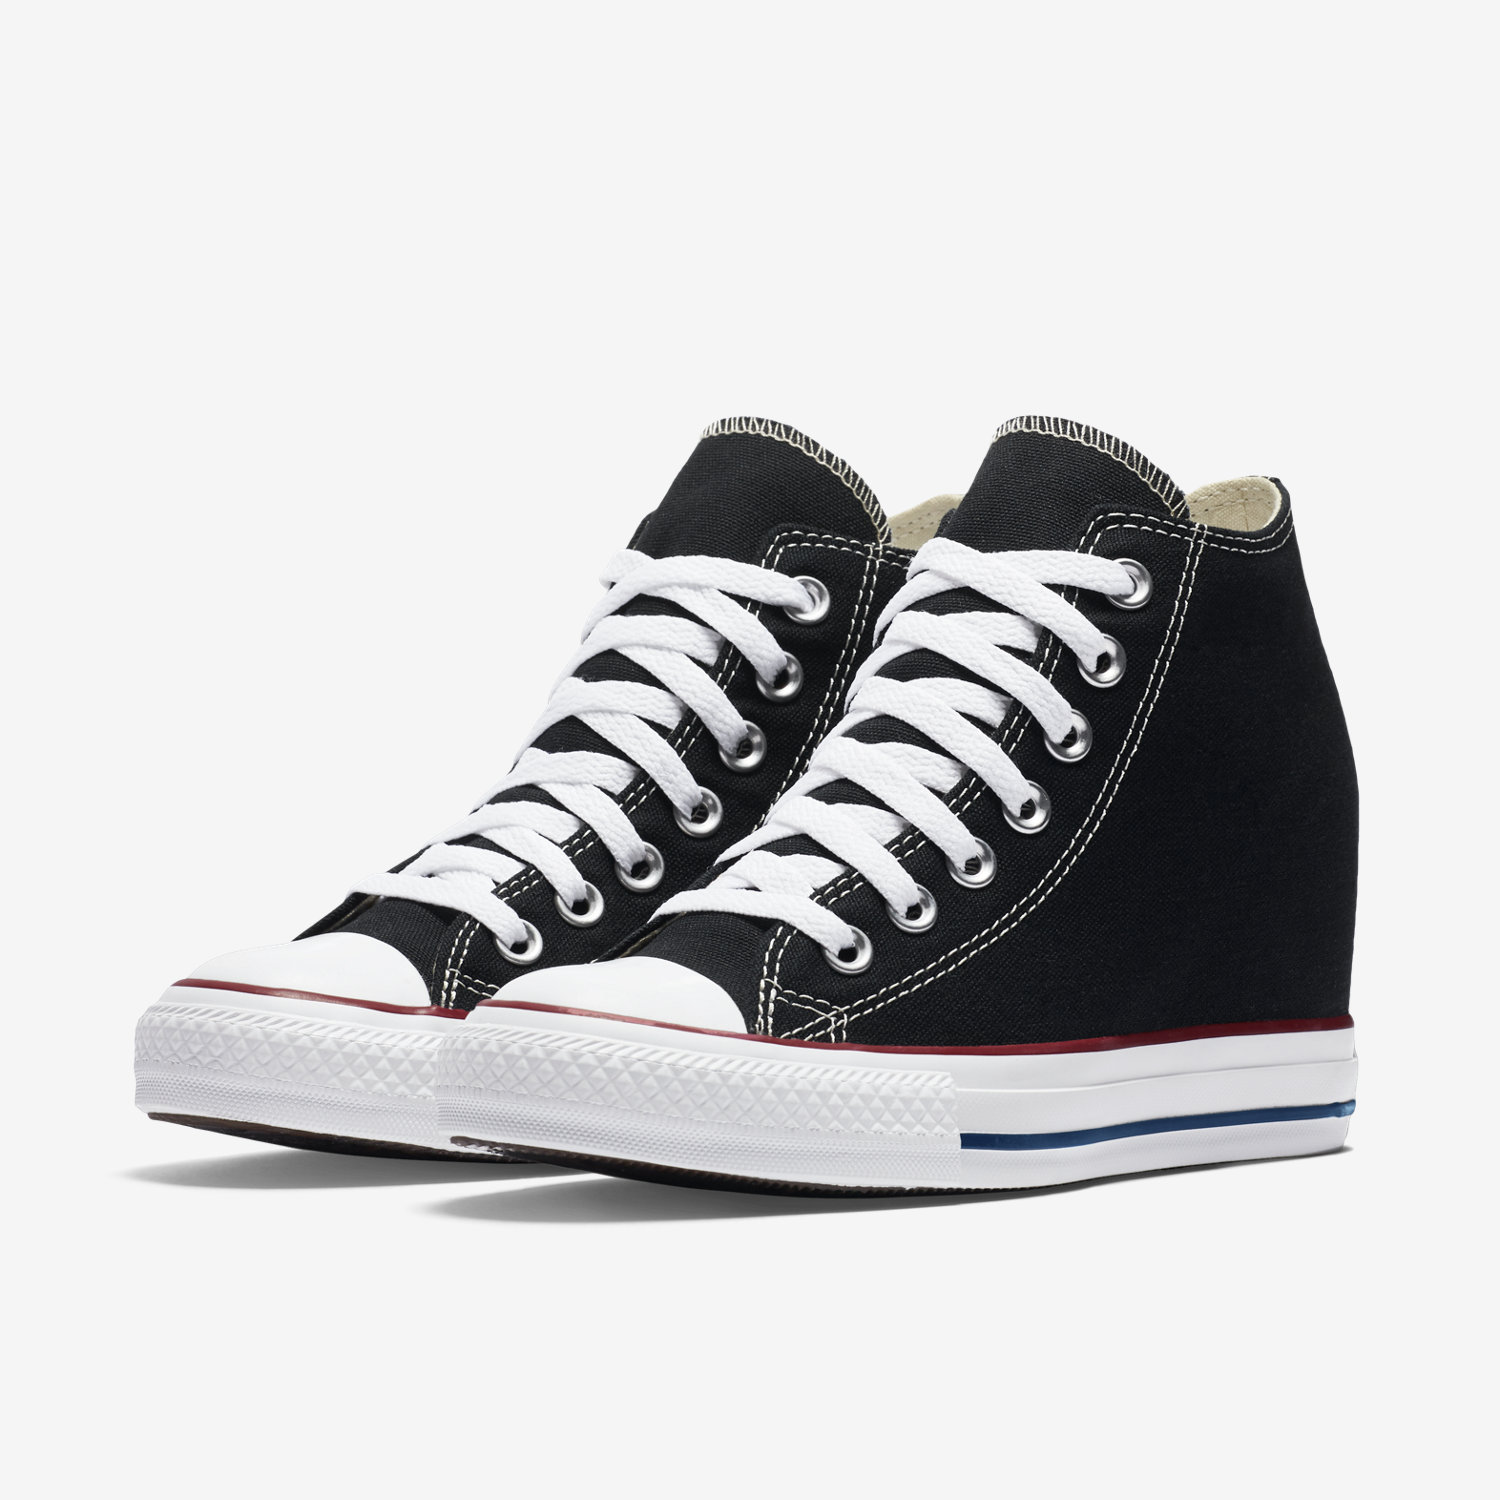 Converse Chuck Taylor Wedge Shoes